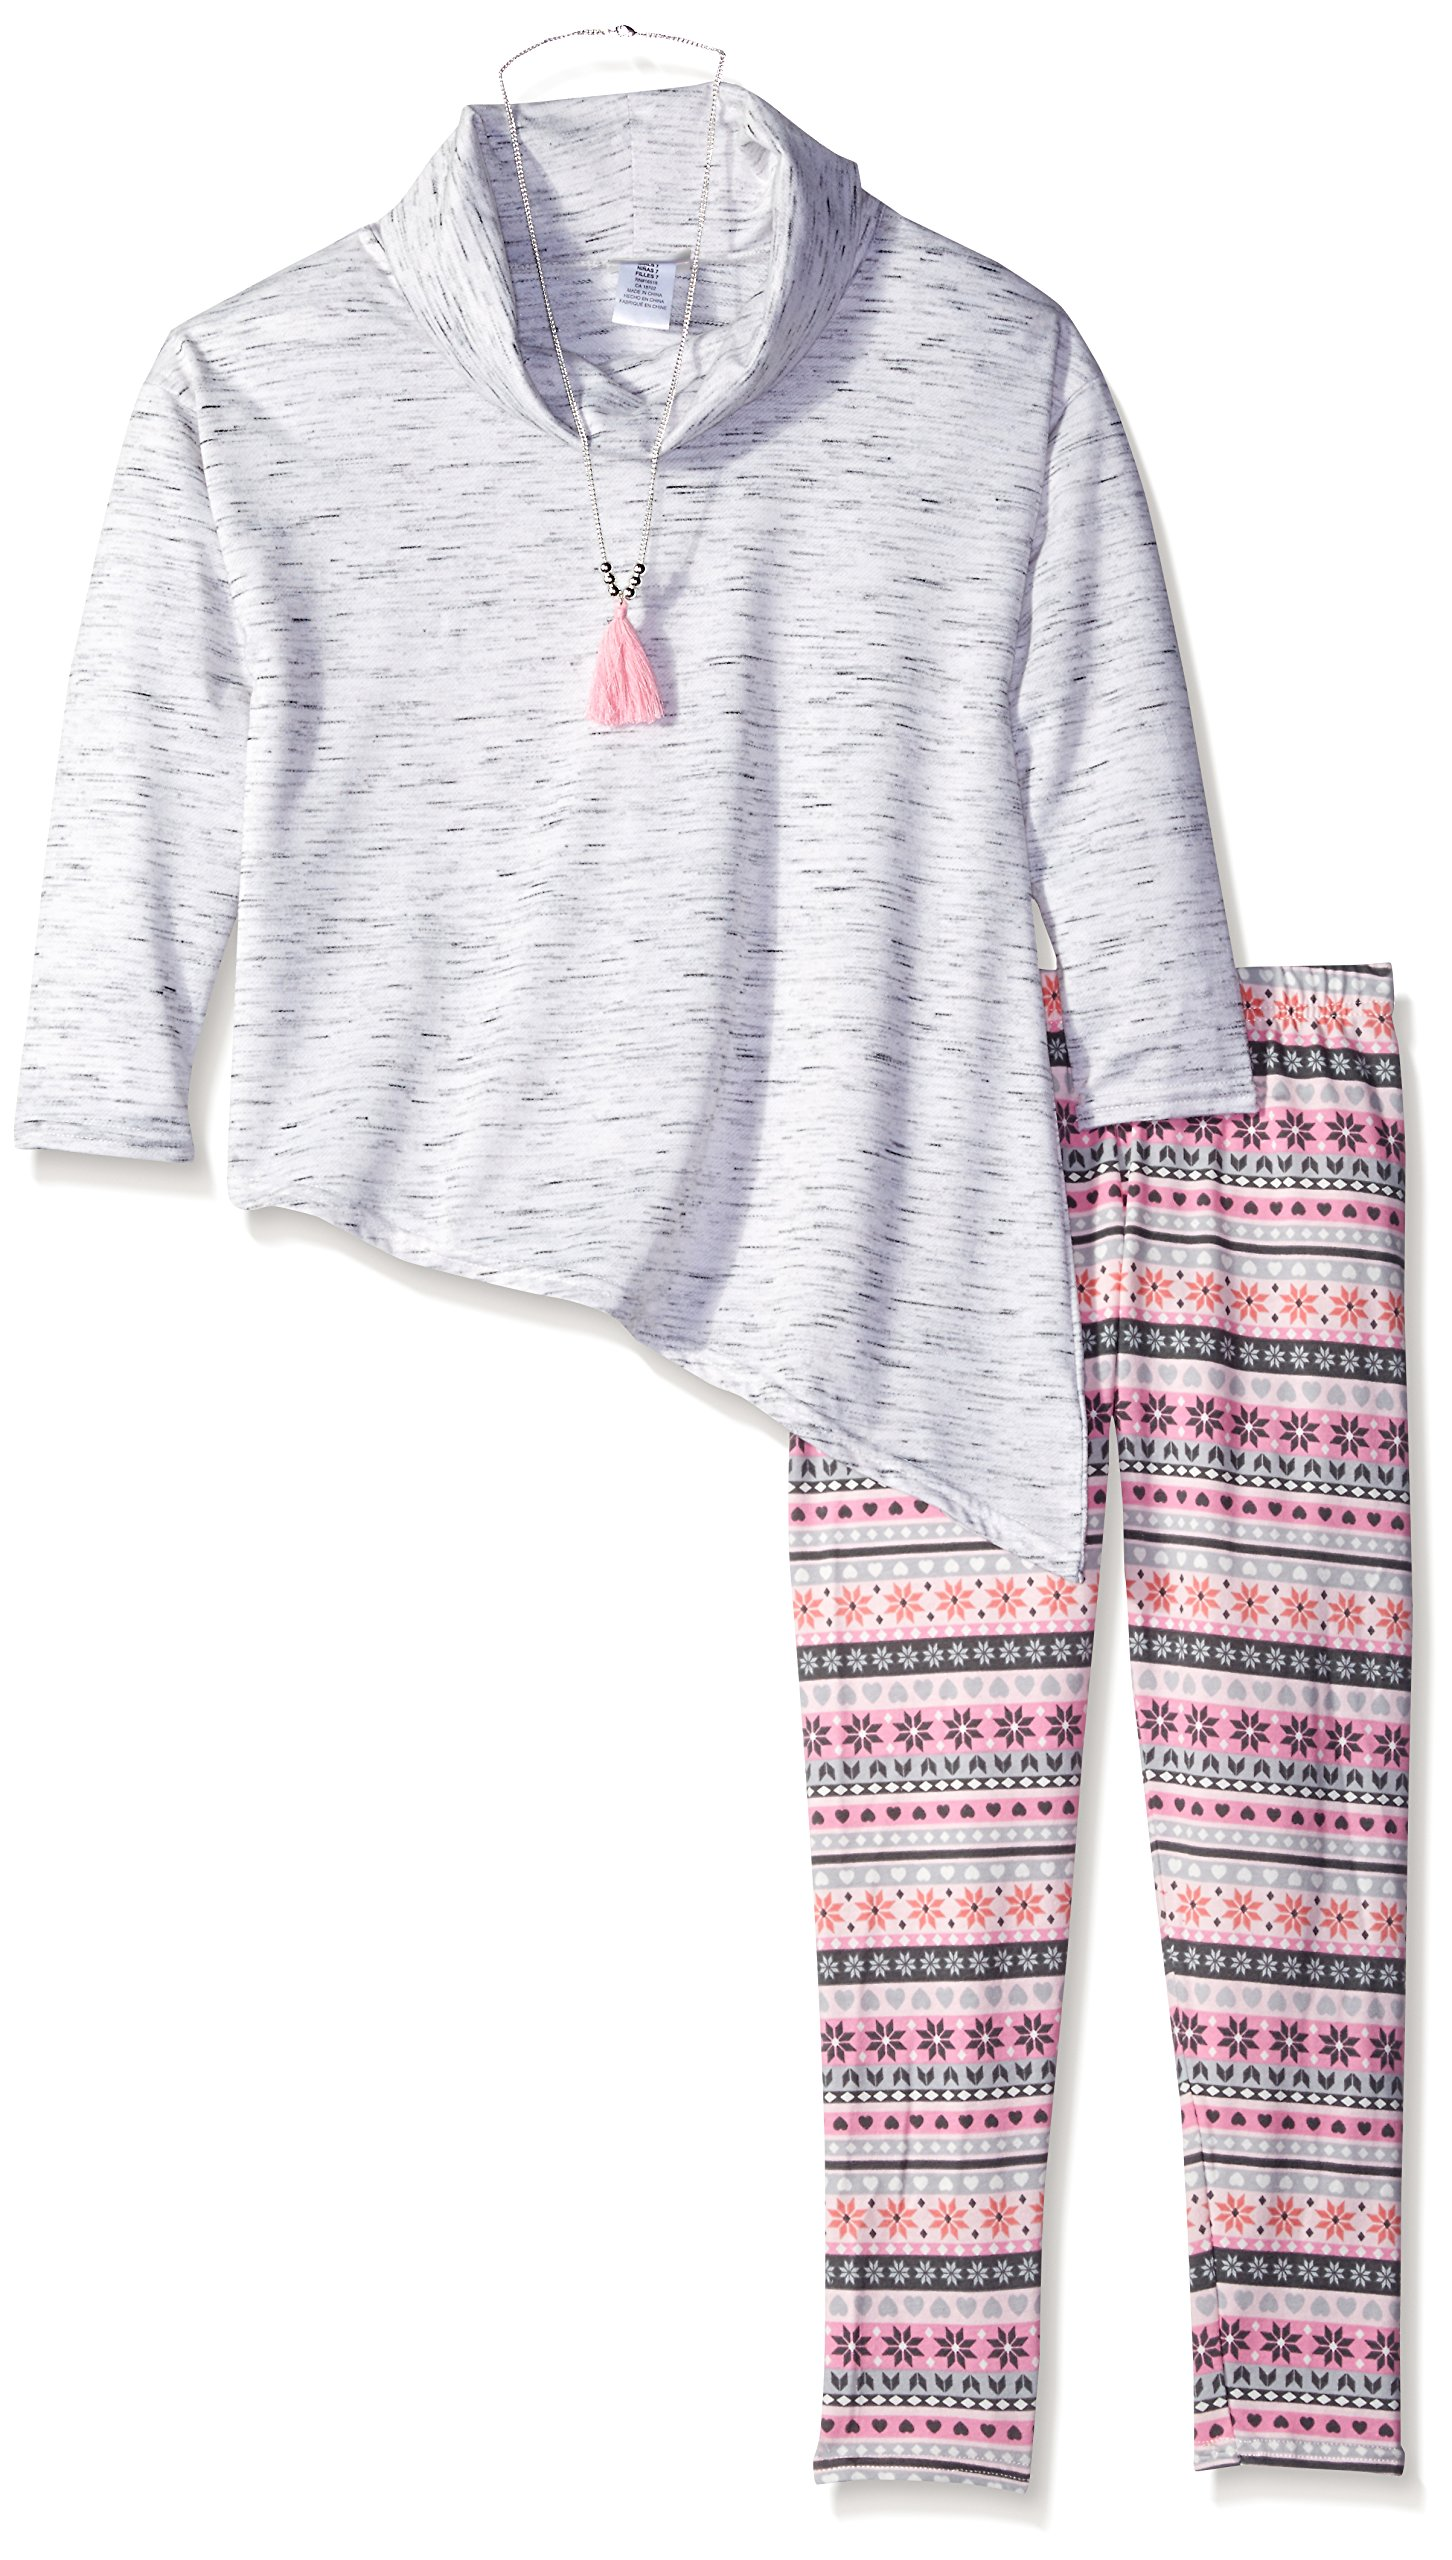 Emily West Big Girls' ''Wry Smile'' 2-Piece Outfit - pink/gray, 10